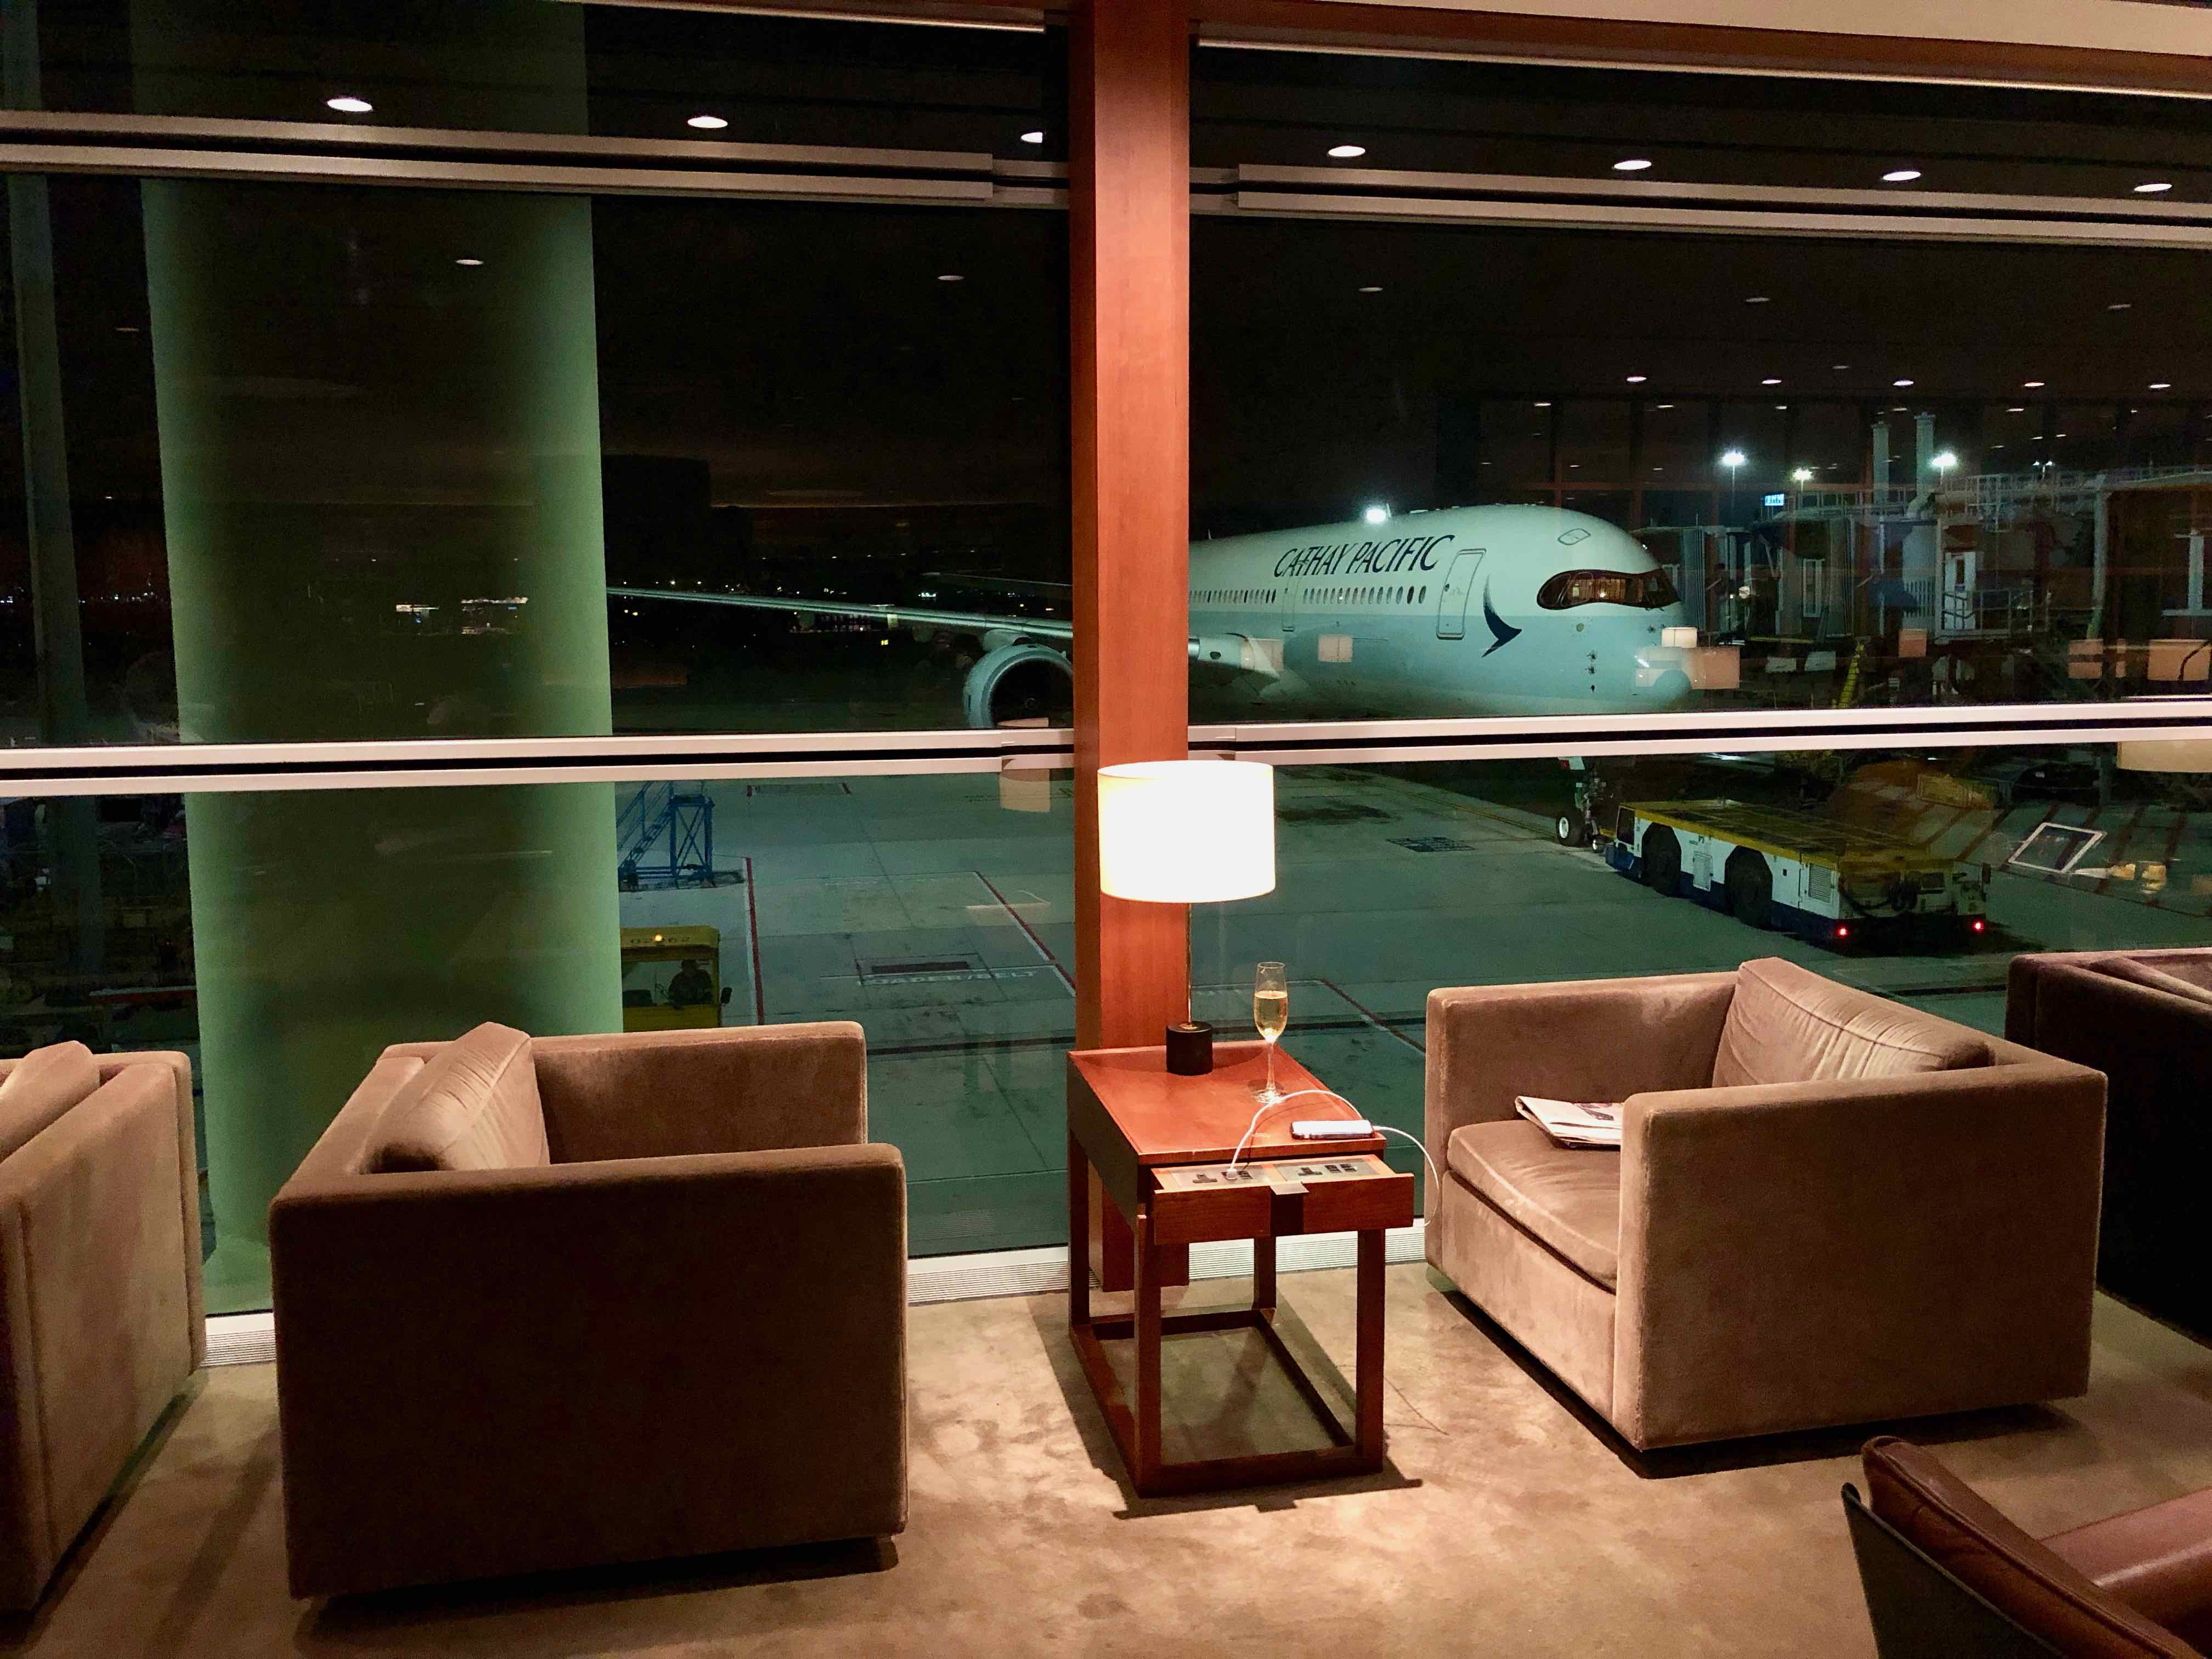 Cathay Pacific The Pier Business Class Lounge Hong Kong seating option by the window